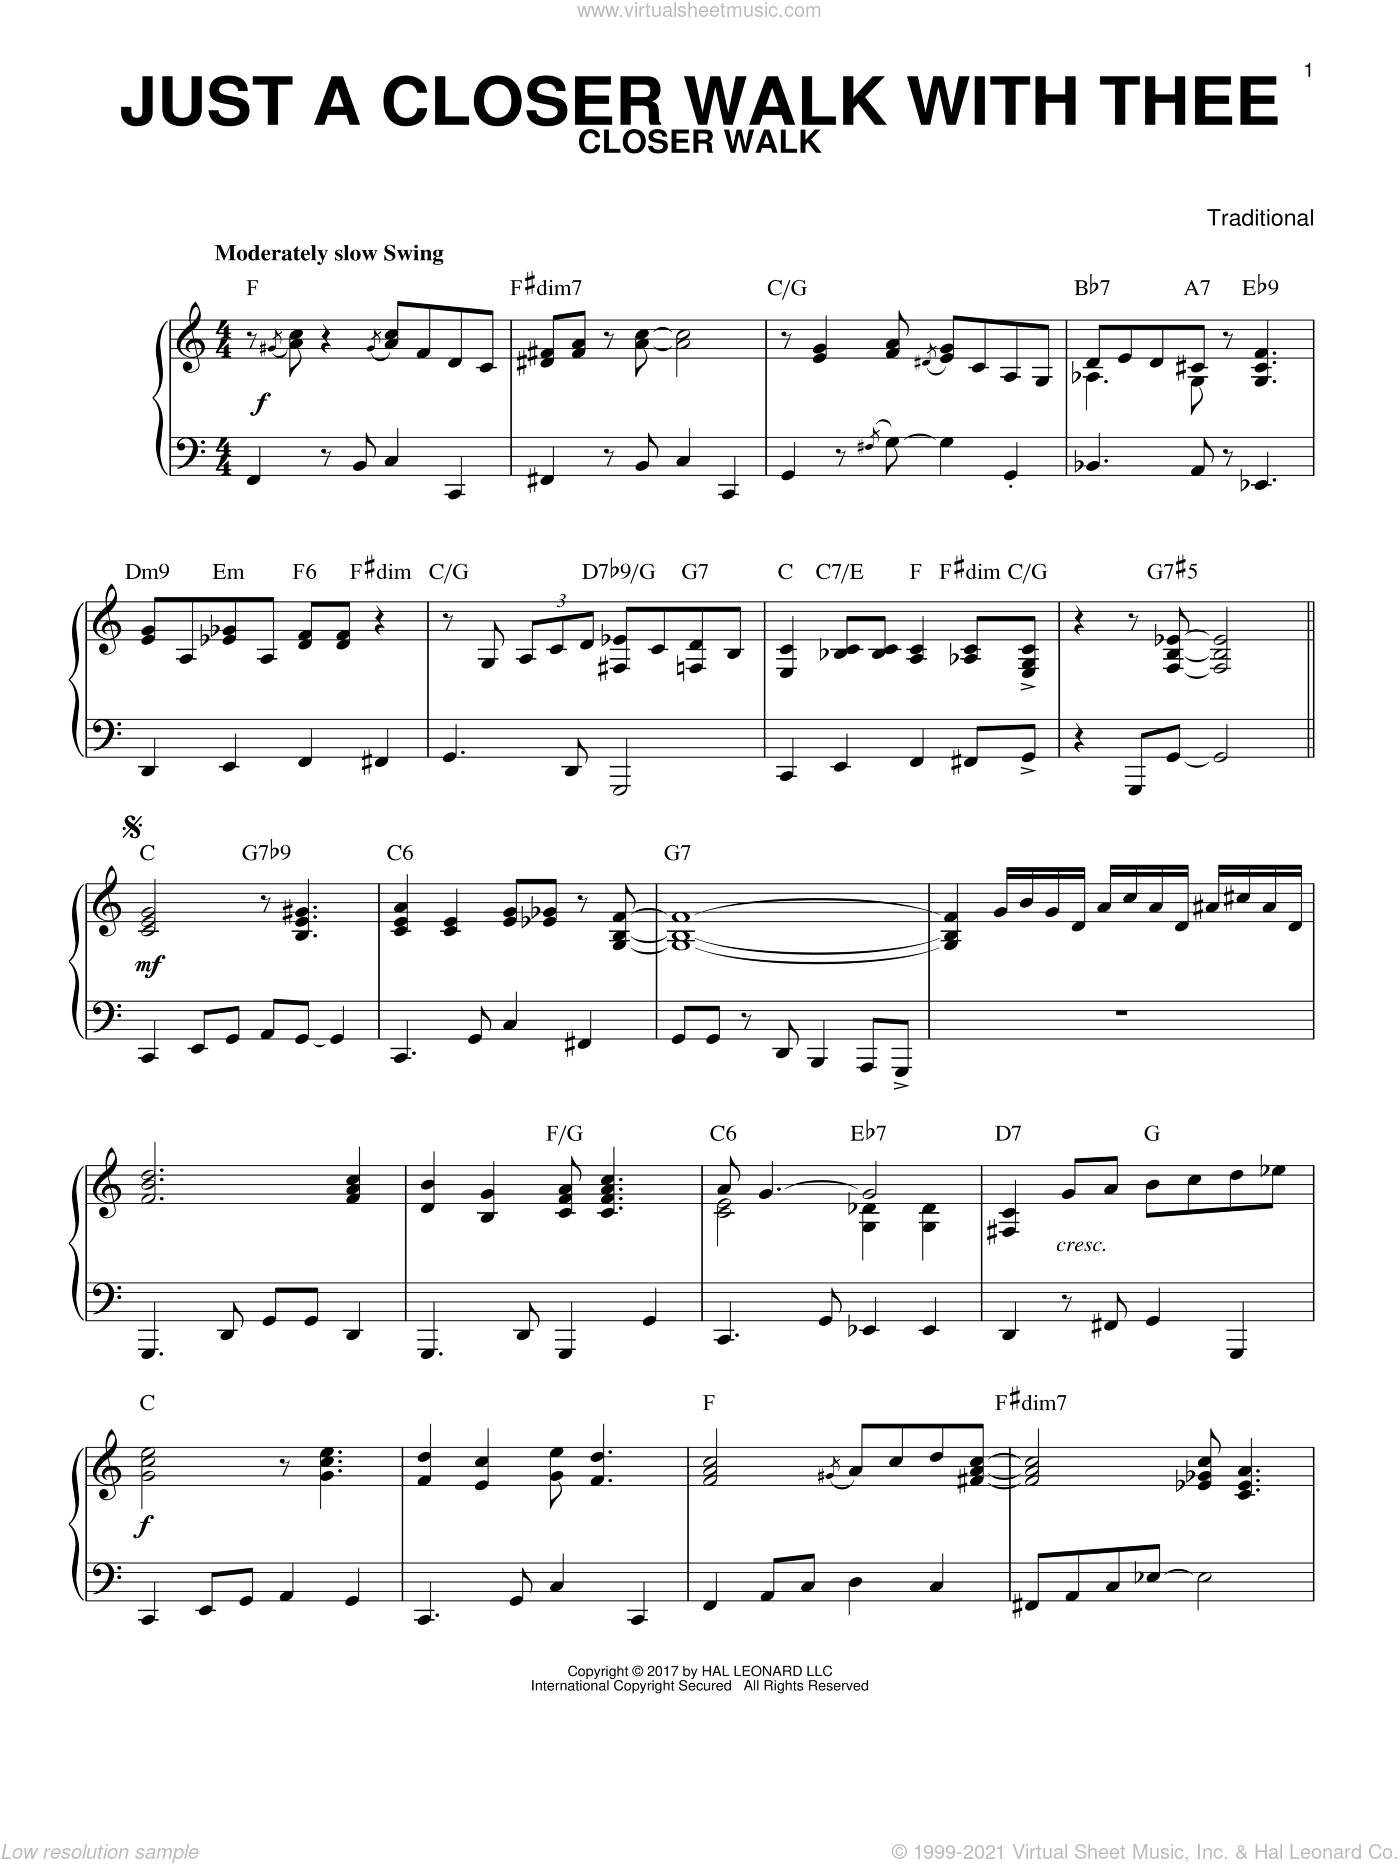 Just A Closer Walk With Thee [Jazz version] sheet music for piano solo by Kenneth Morris and Miscellaneous, intermediate skill level